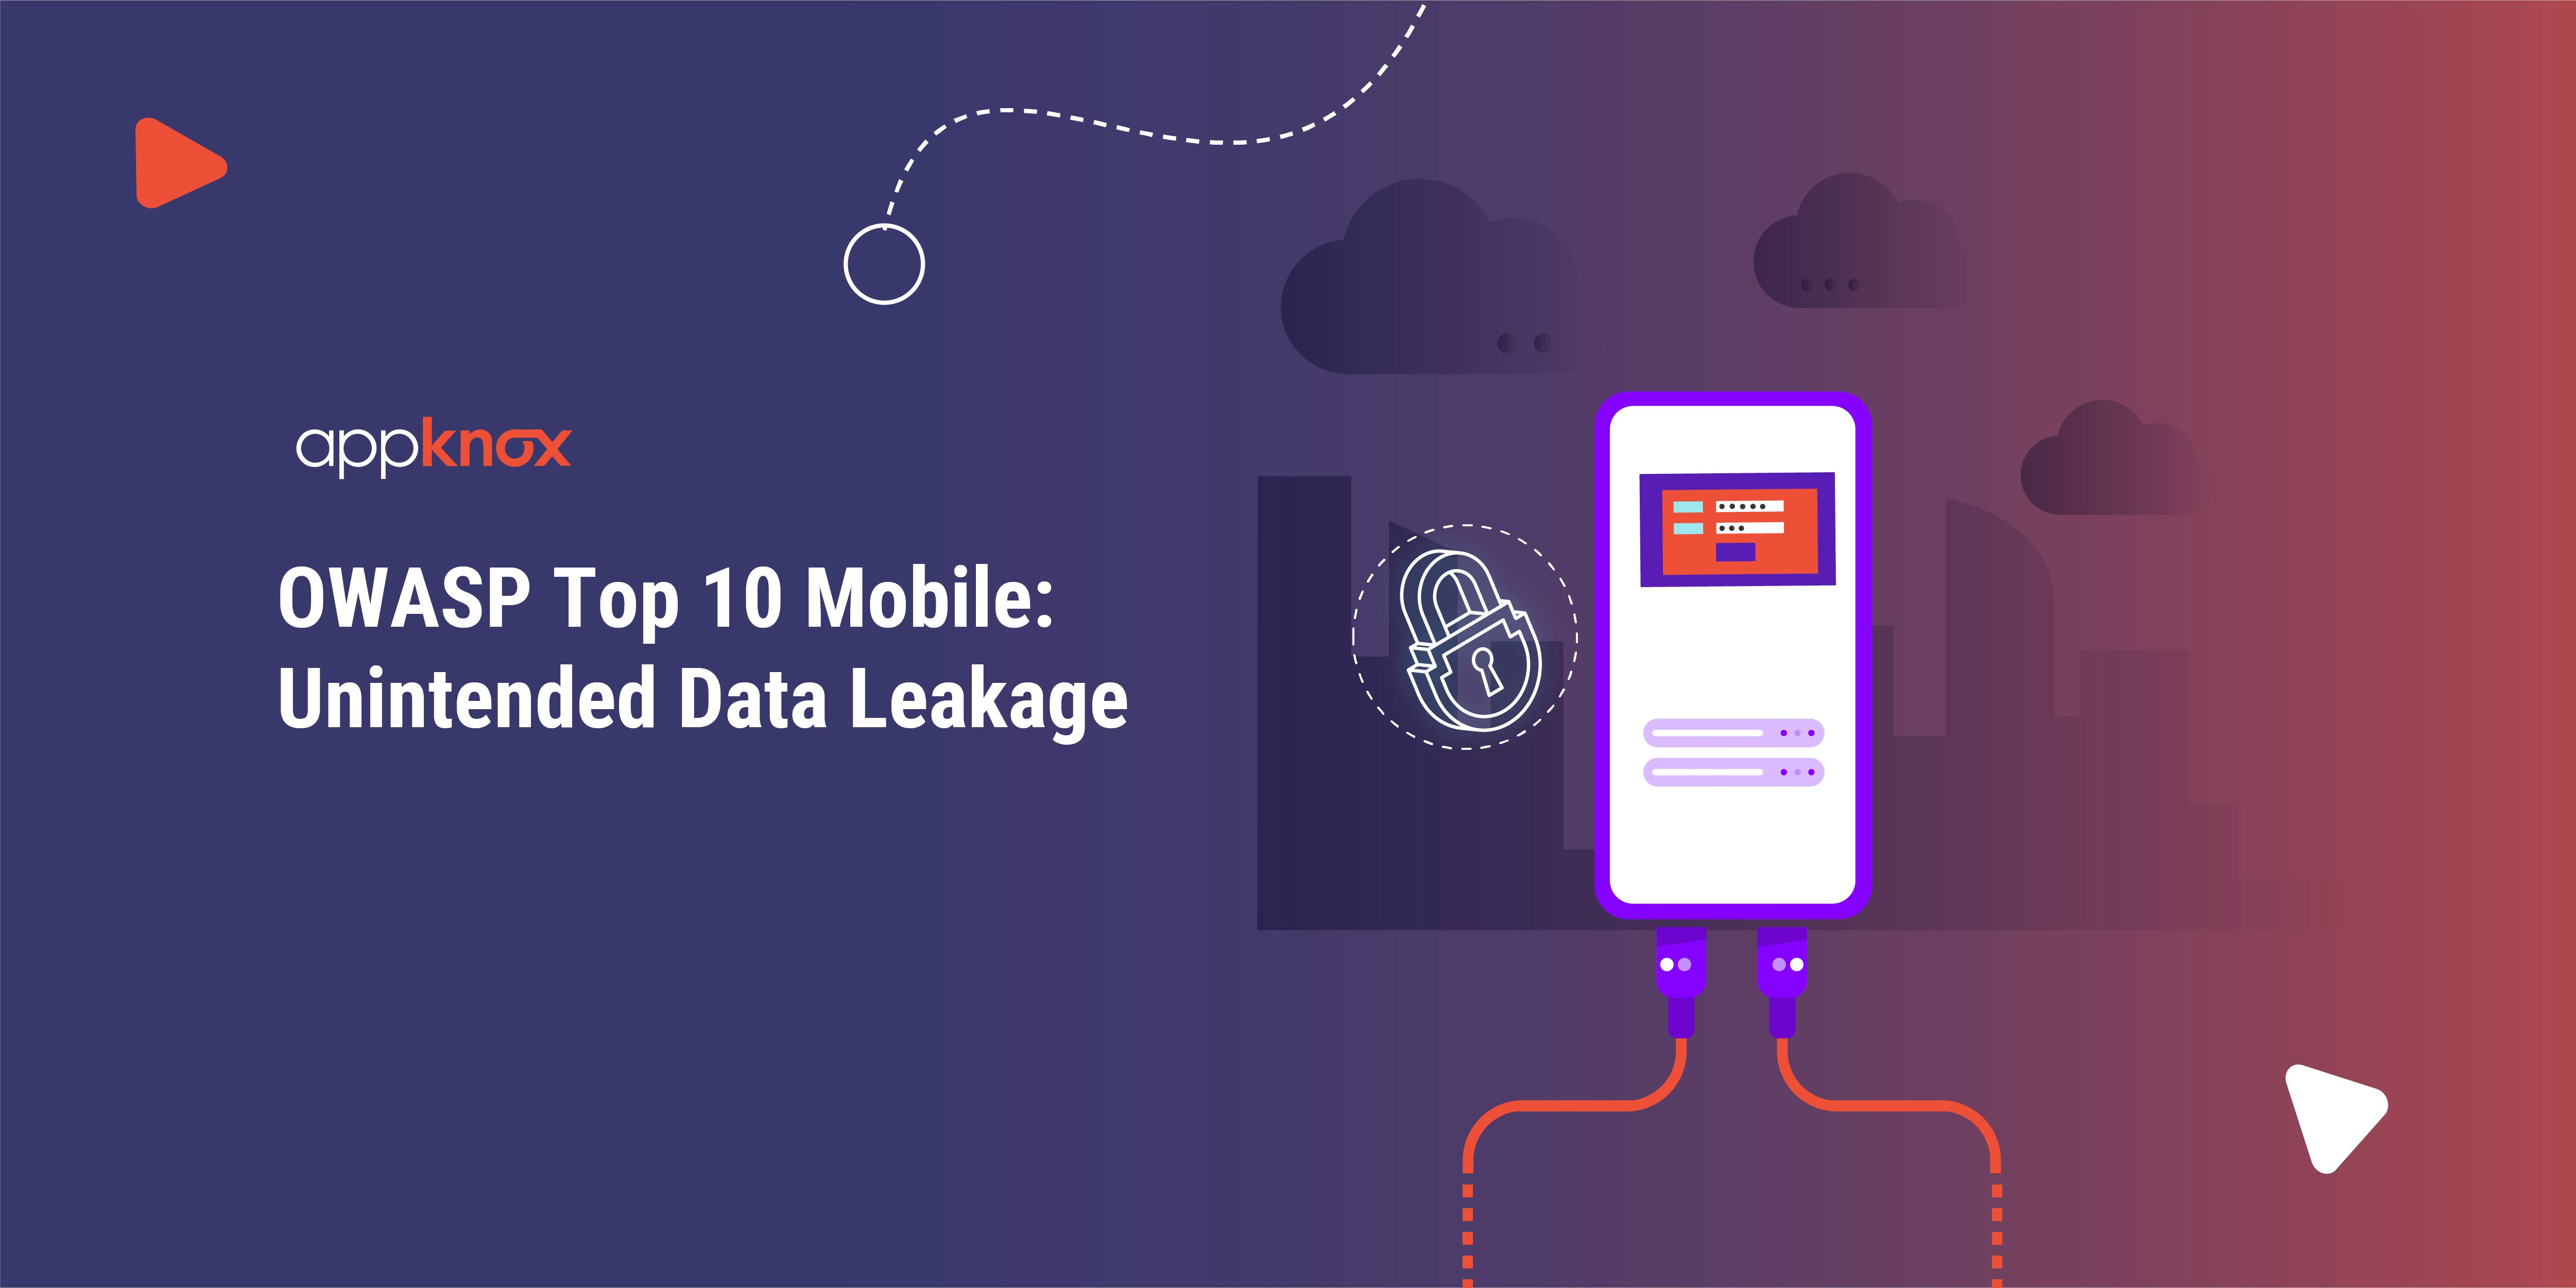 OWASP Top 10 Mobile: Unintended Data Leakage